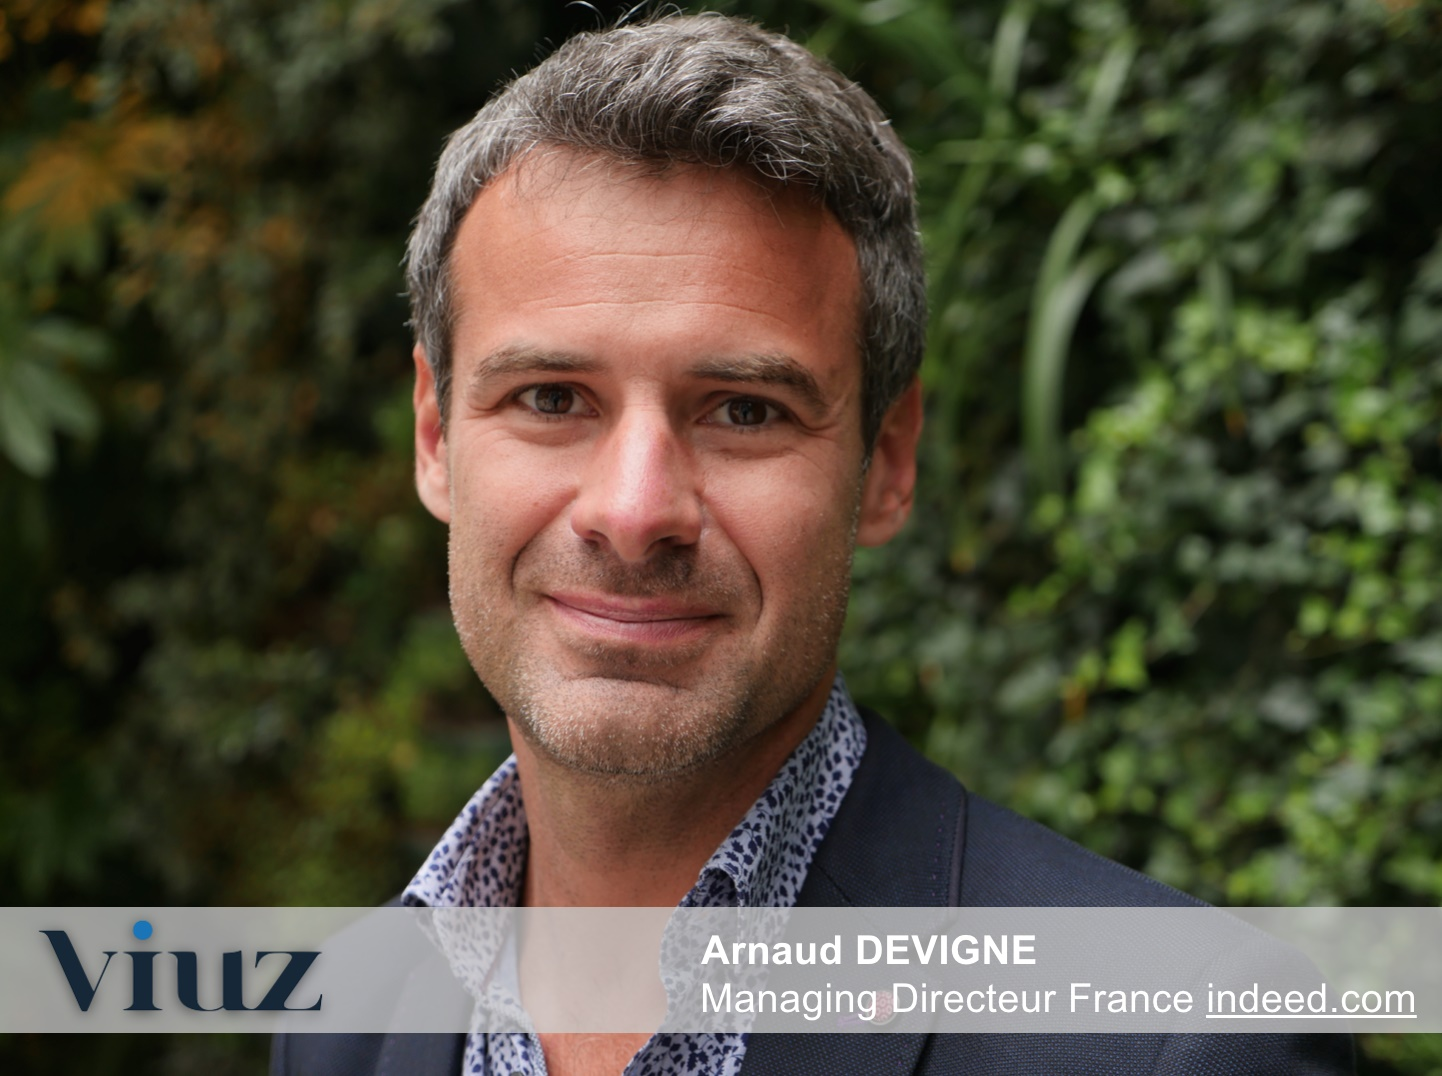 Arnaud Devigne Managing Director France Indeed